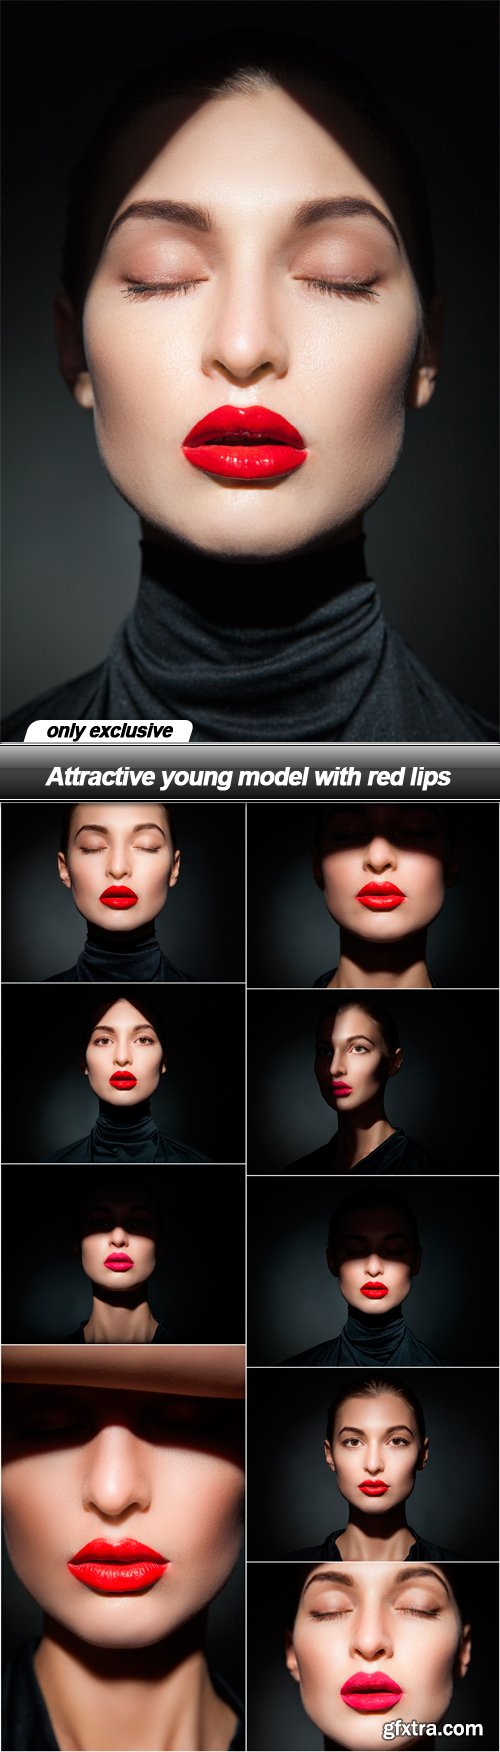 Attractive young model with red lips - 10 UHQ JPEG